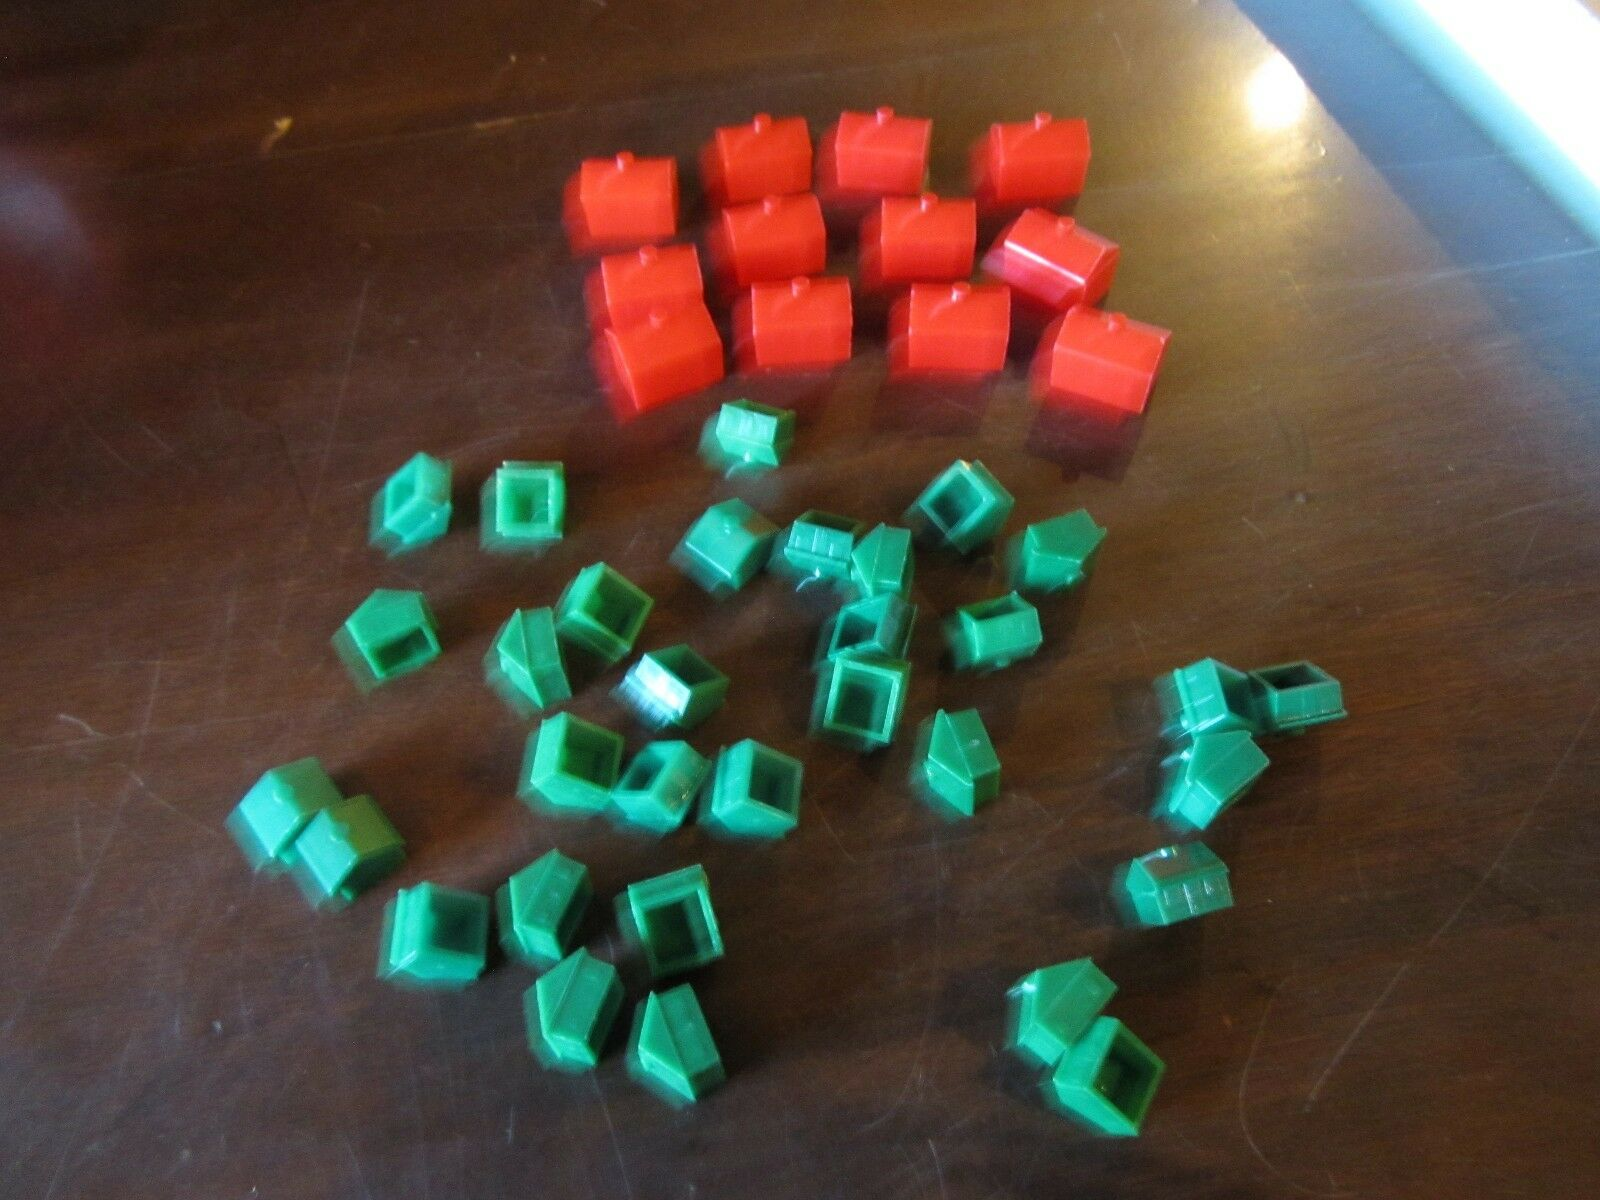 Replacement monopoly play pieces 12 red hotels and 32 green houses Parts